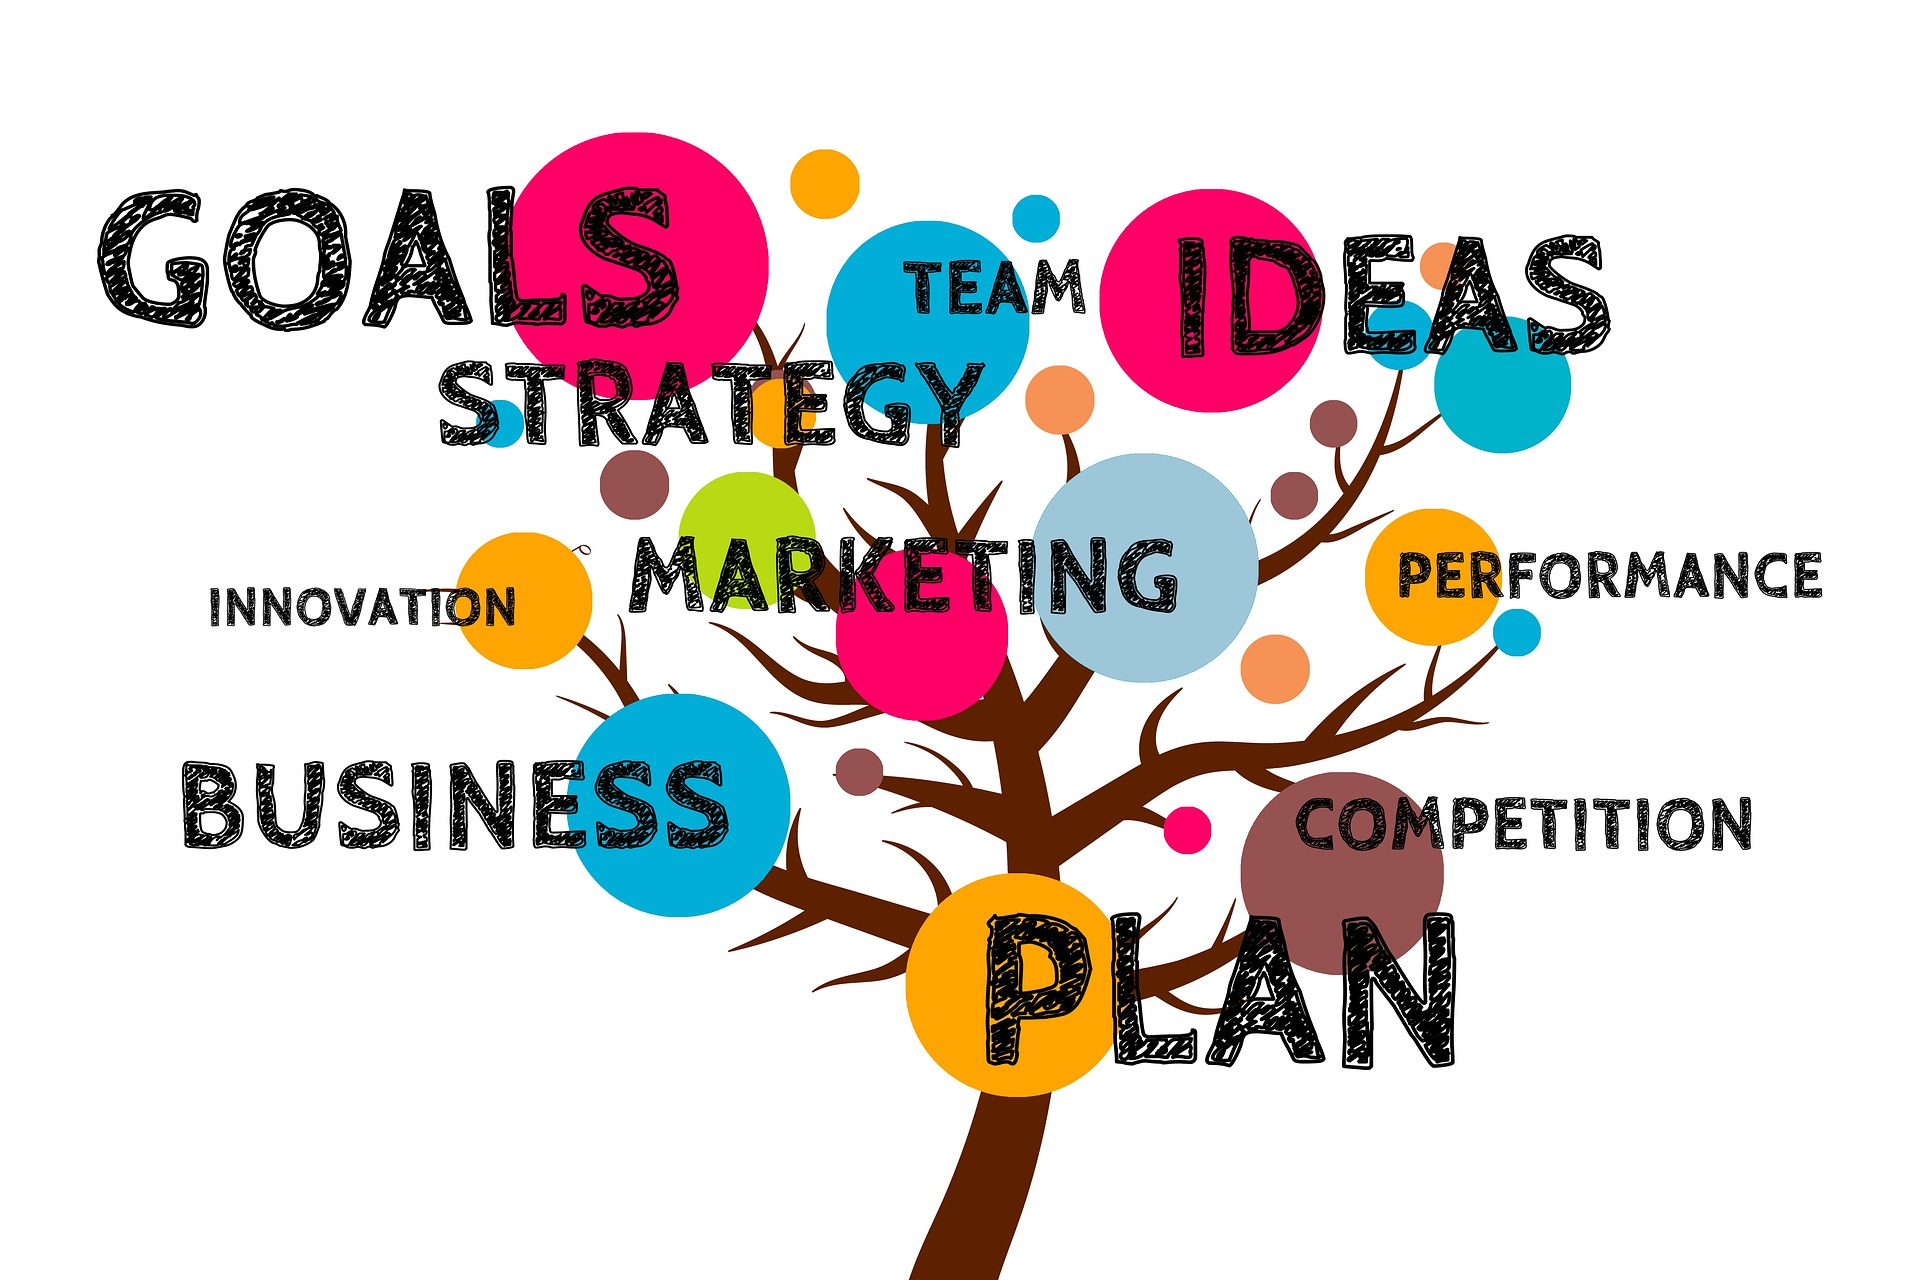 clip art tree with business terminology in the branches, including goals, team, idea, strategy, marketing, business, plan, innovation, performance, competition